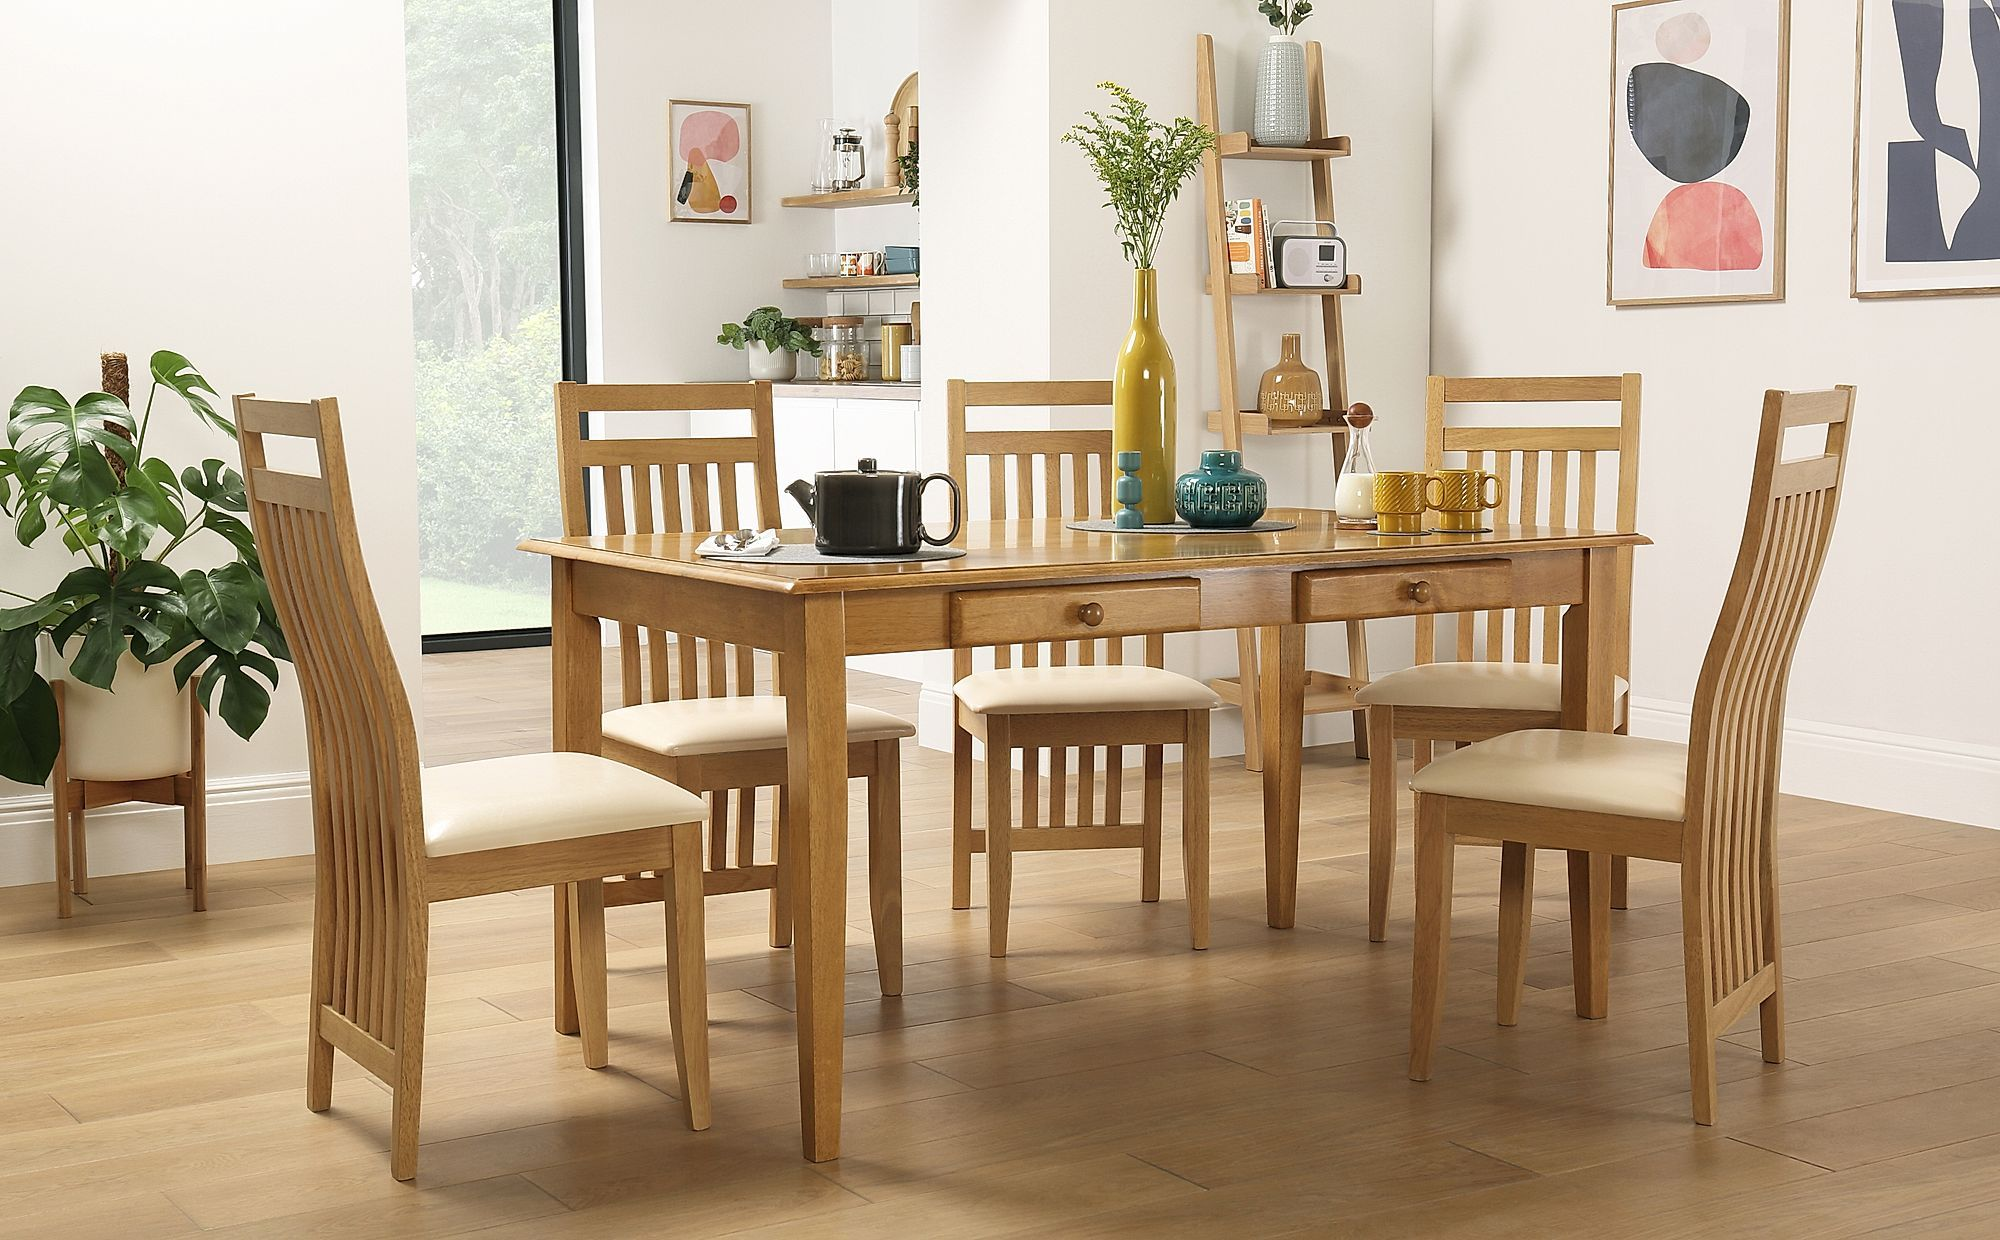 Wiltshire Oak Dining Table With Storage With 6 Bali Chairs